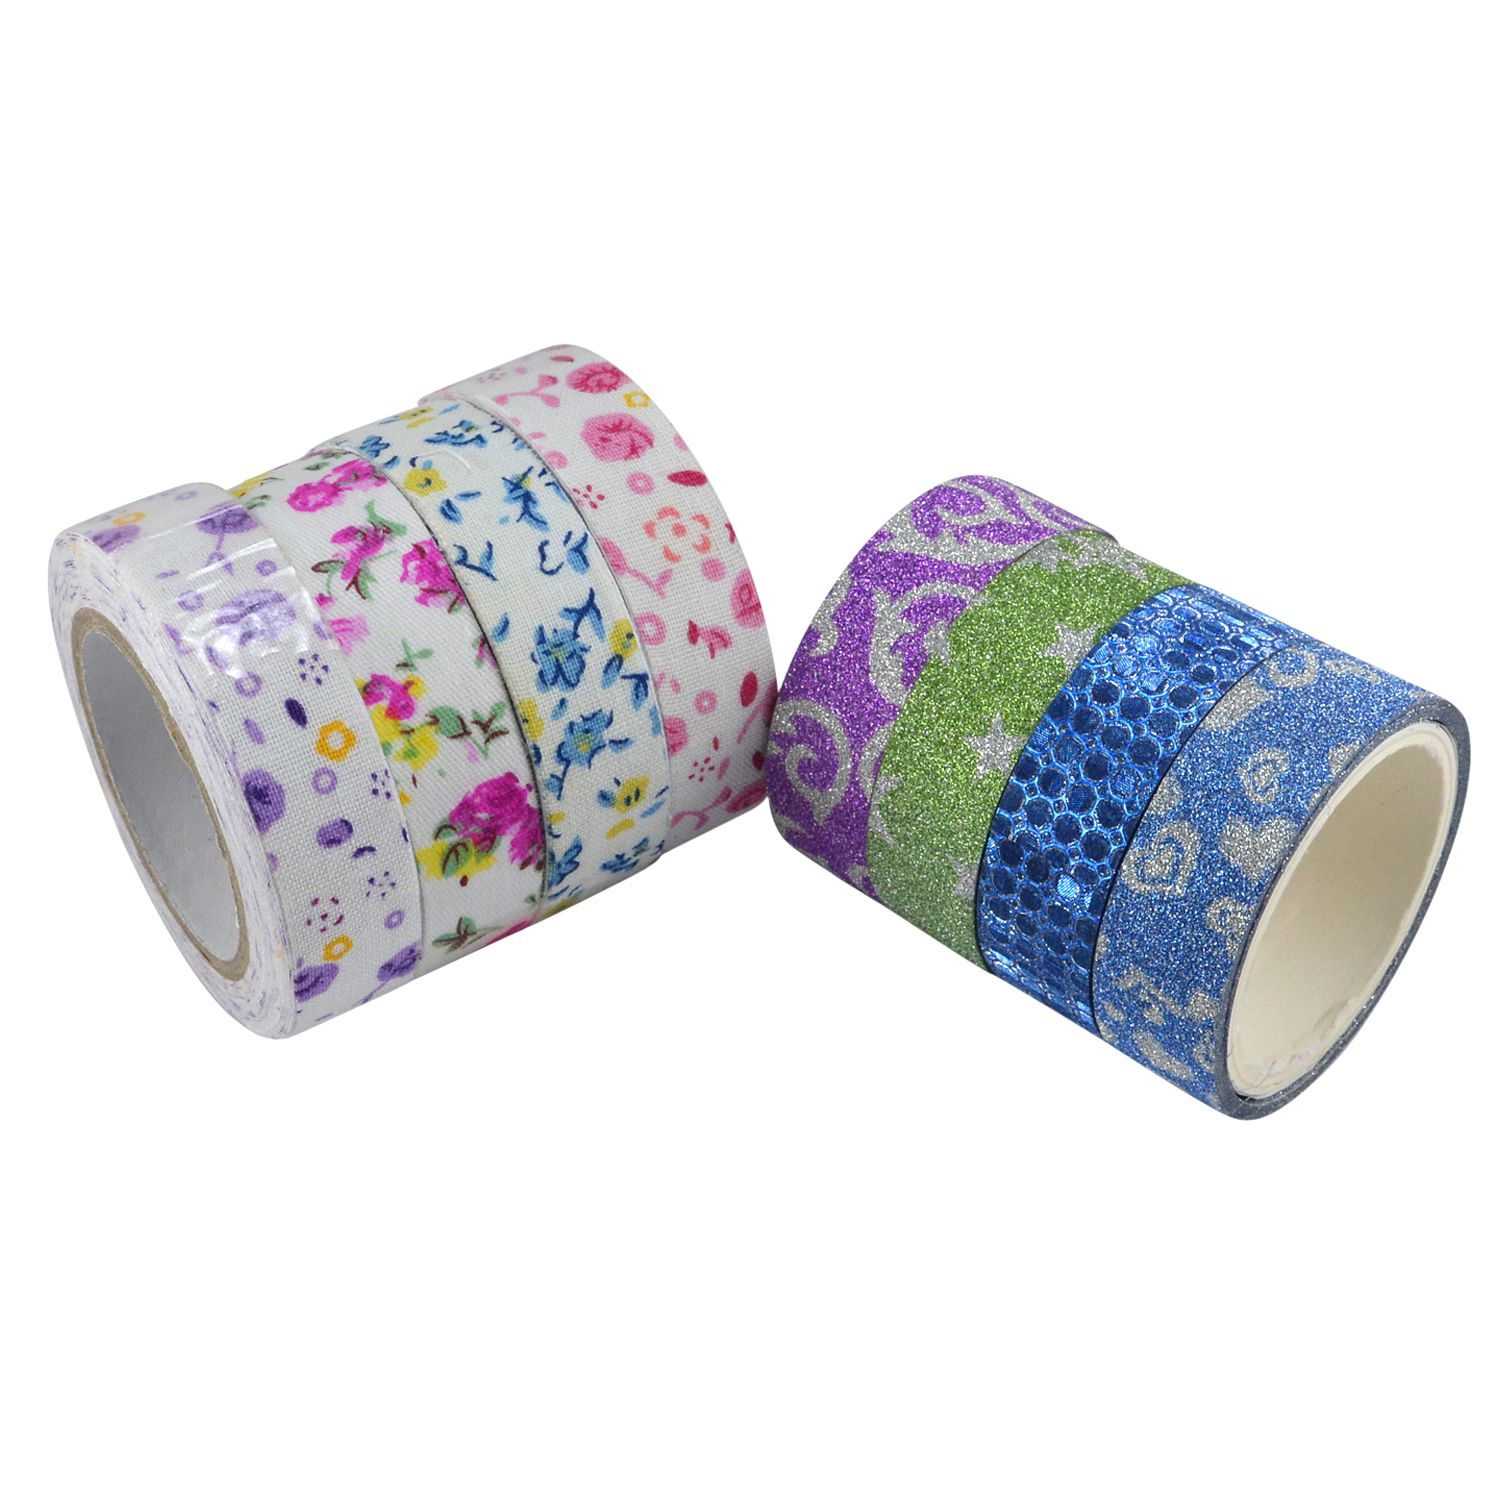 Make reuse crafts with wrapping paper leftover Saamarth Impex 4 Fabric 4 Paper Roll Crafts Gift Wrapping Paper